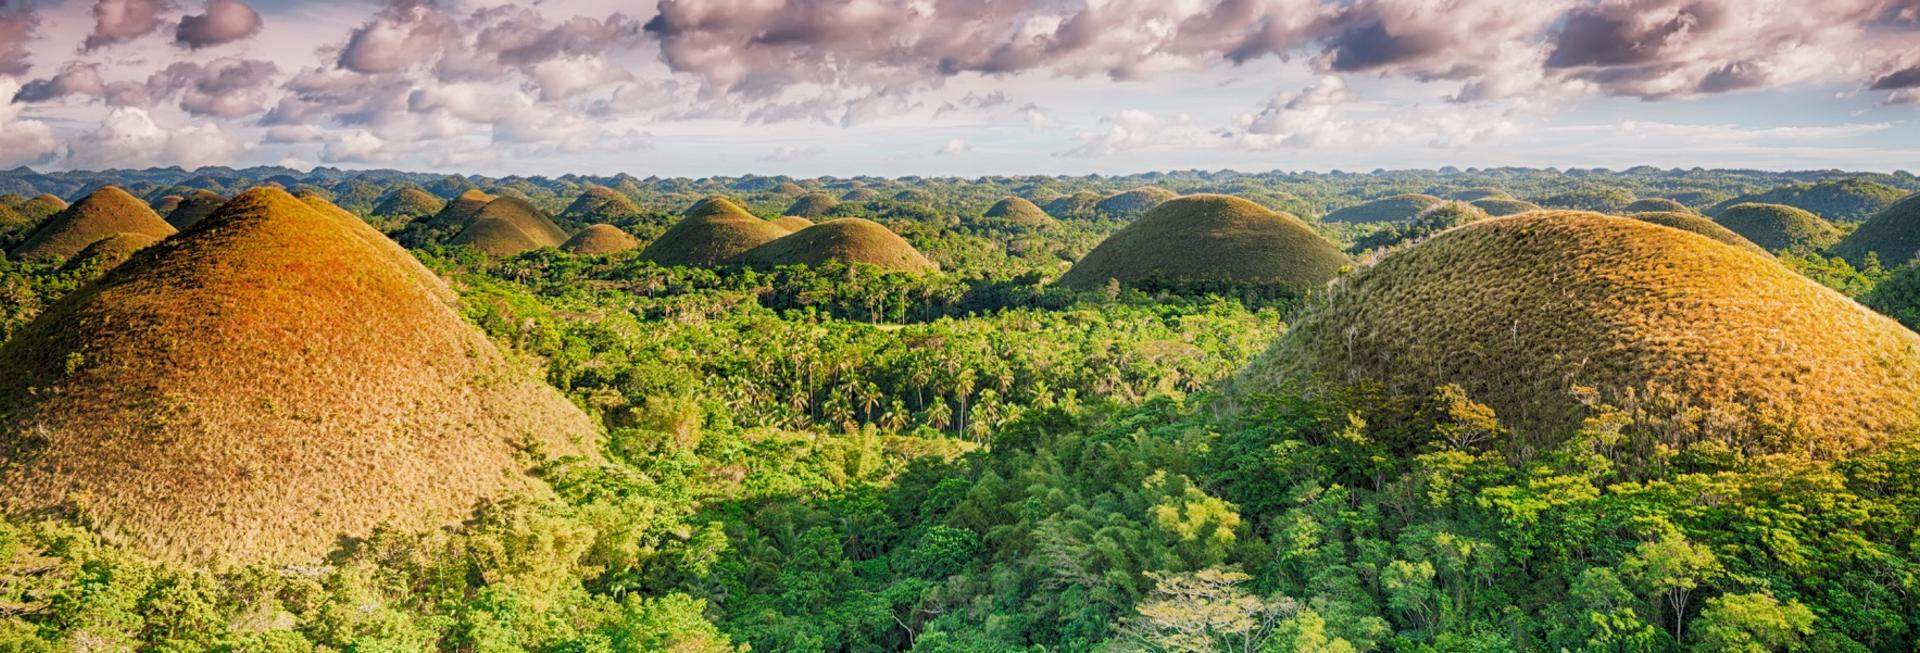 Chocolate Hills, Bohol, the Philippines